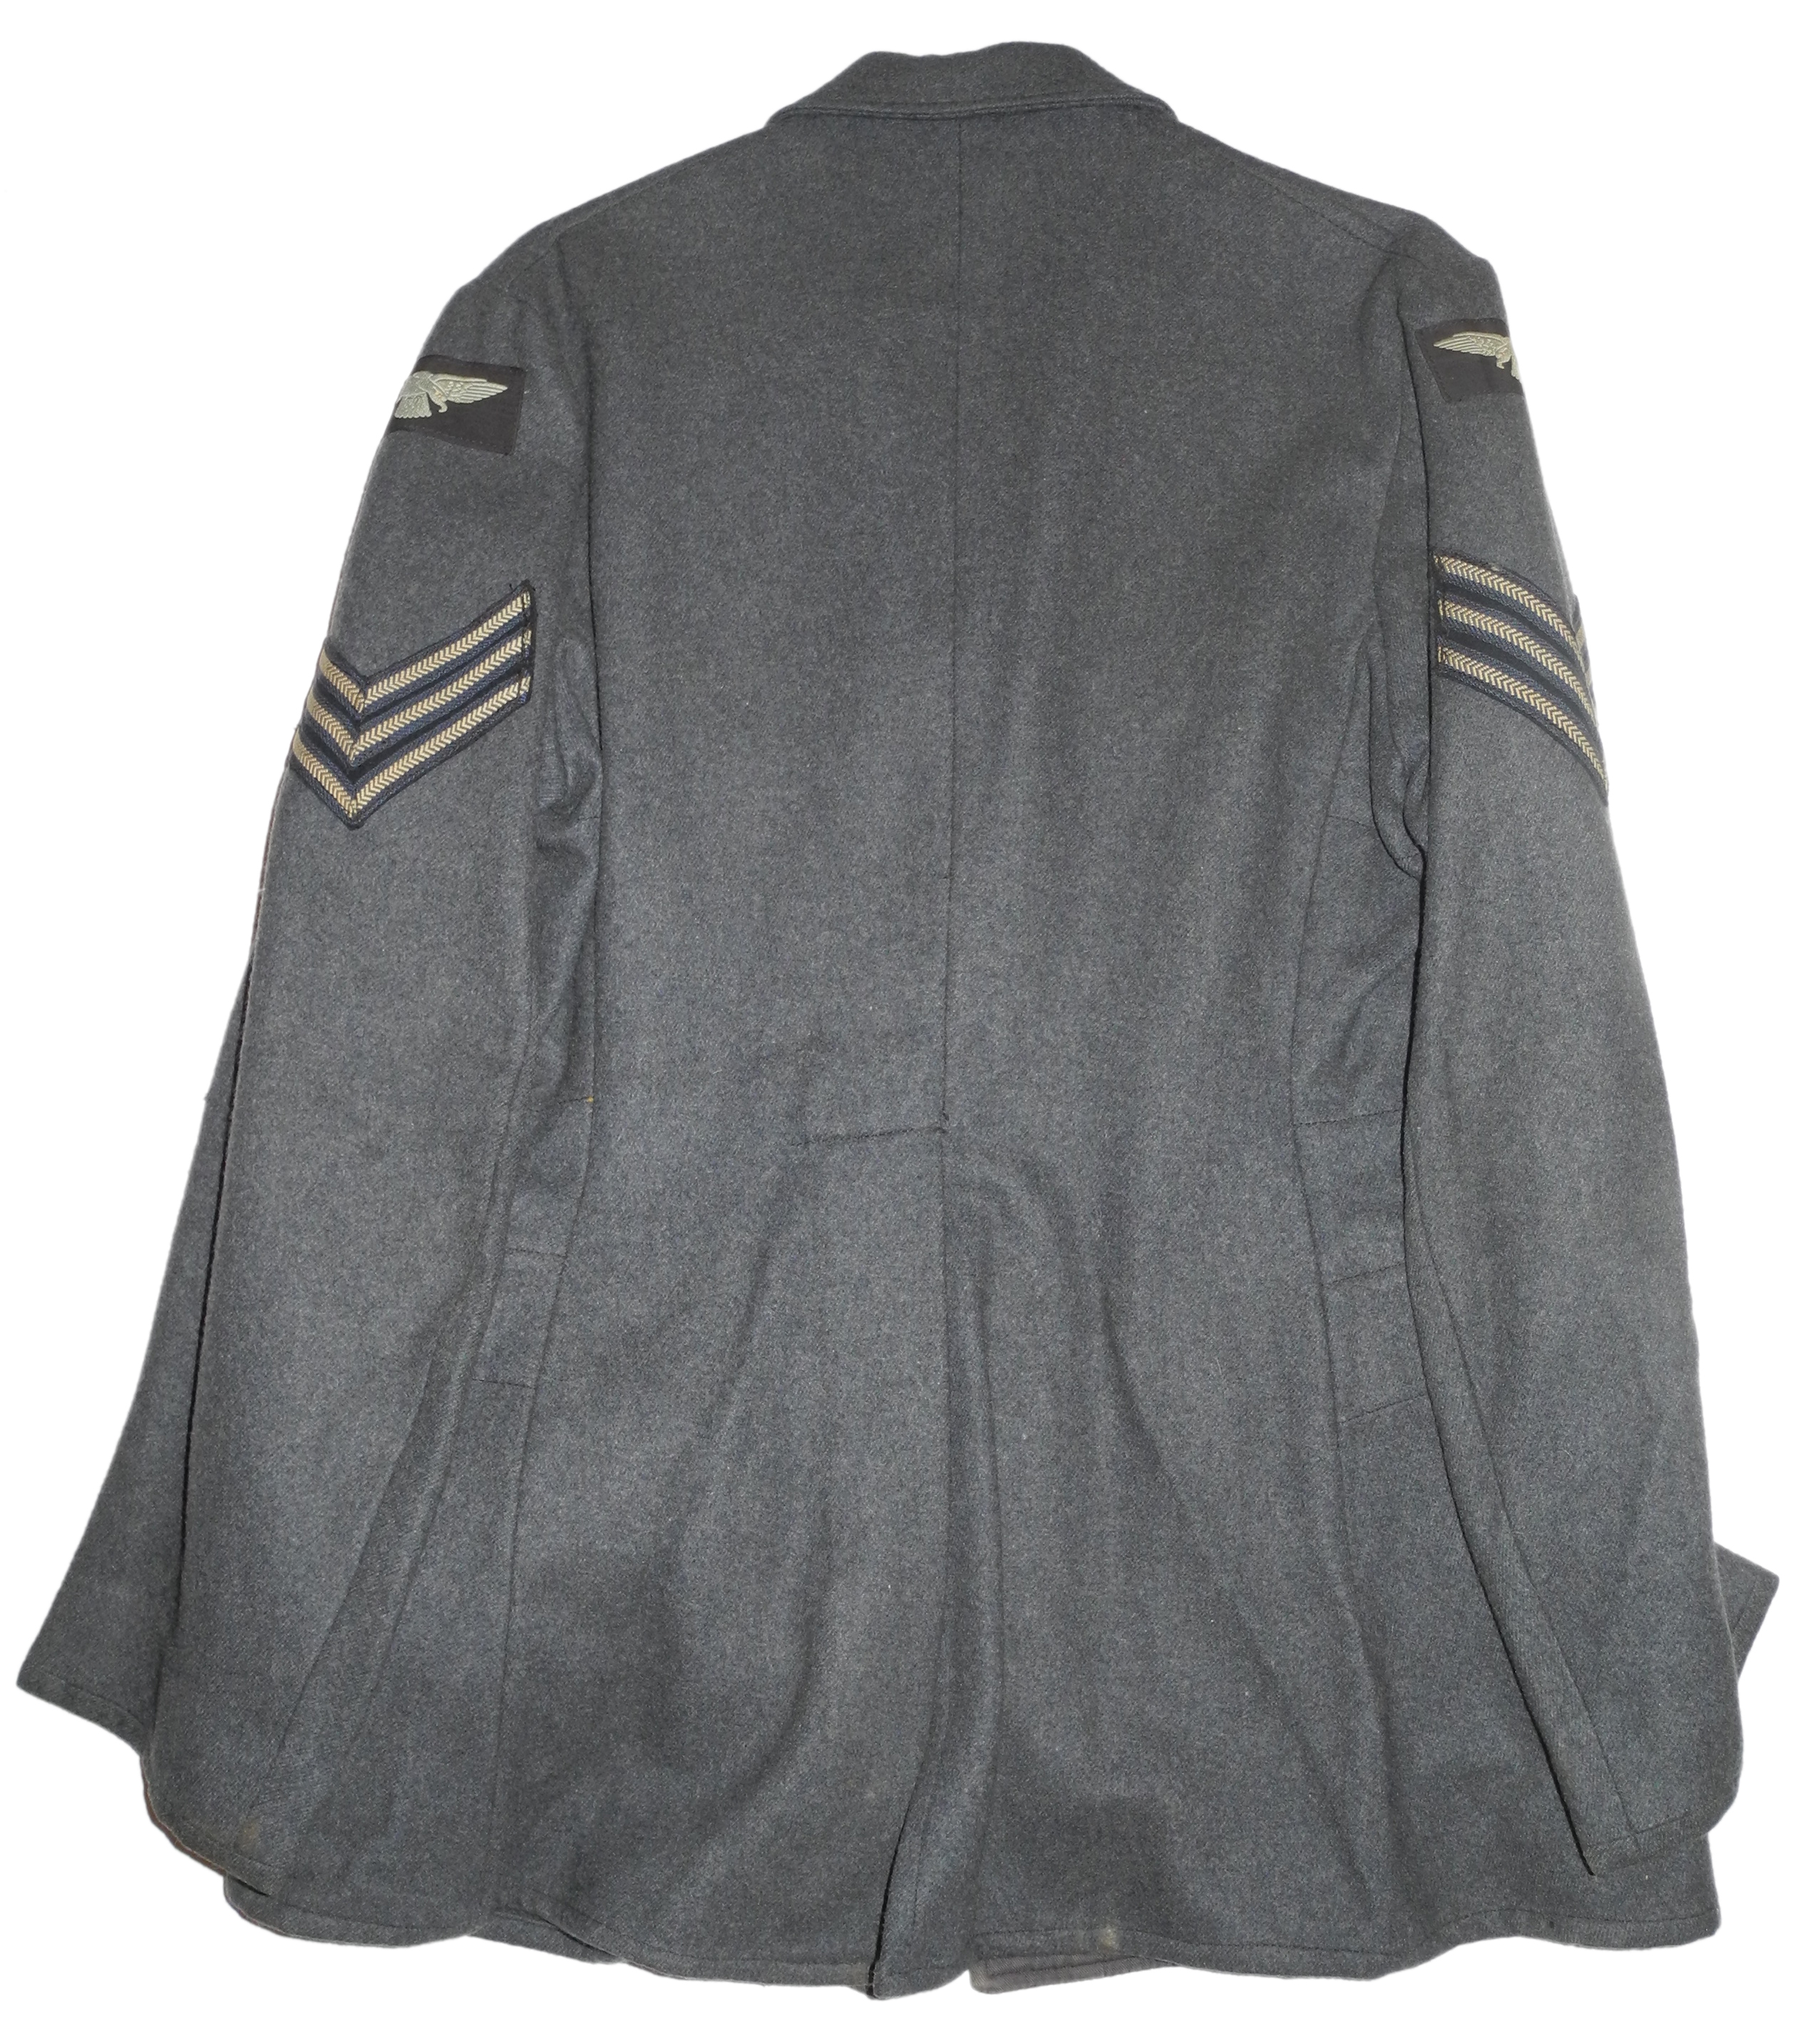 RAF sergeant service dress with pathfinder badge